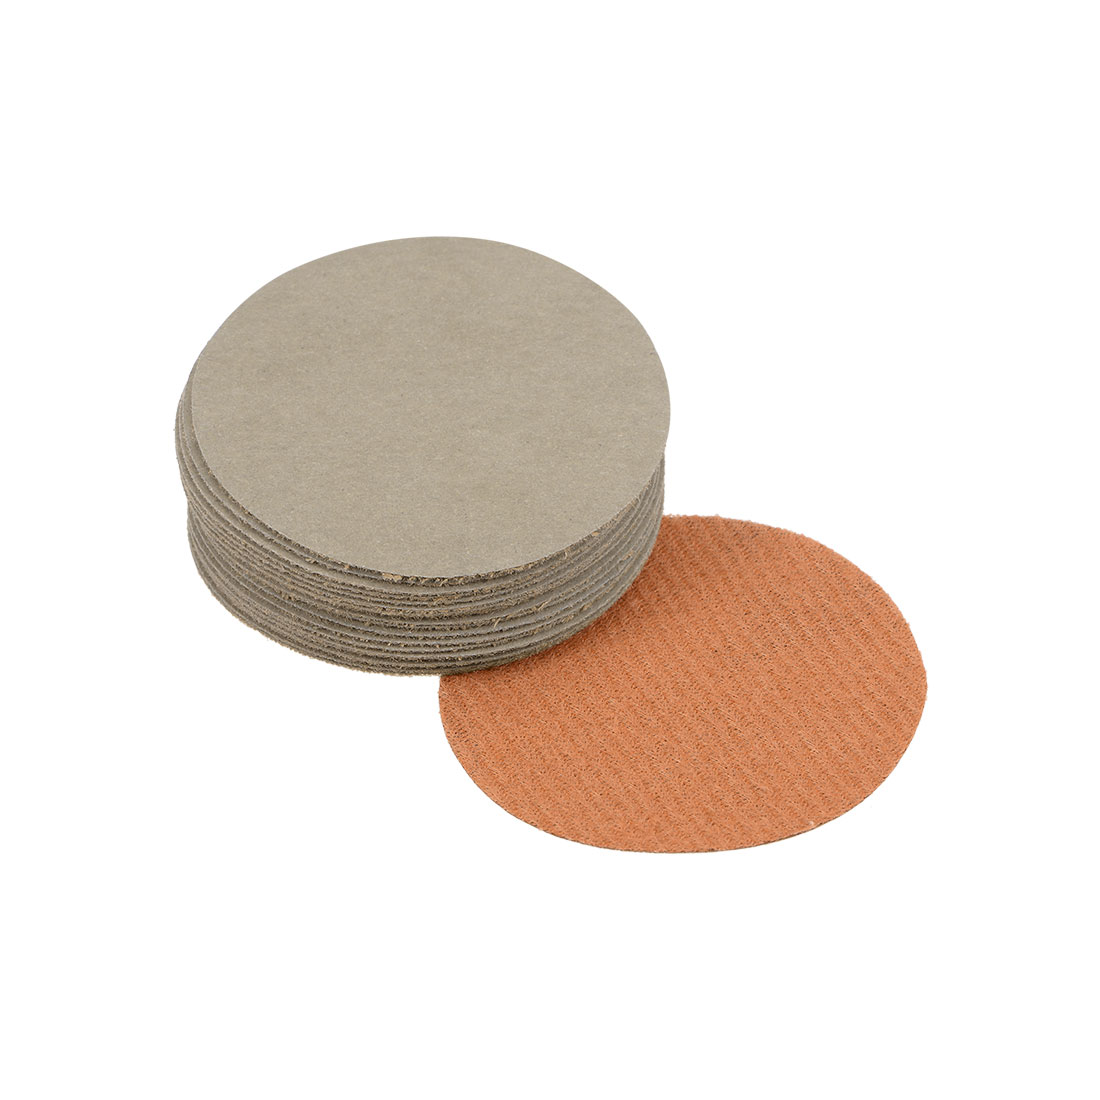 2 inch Wet Dry Discs 10000 Grit Hook and Loop Sanding Disc Silicon Carbide 20pcs